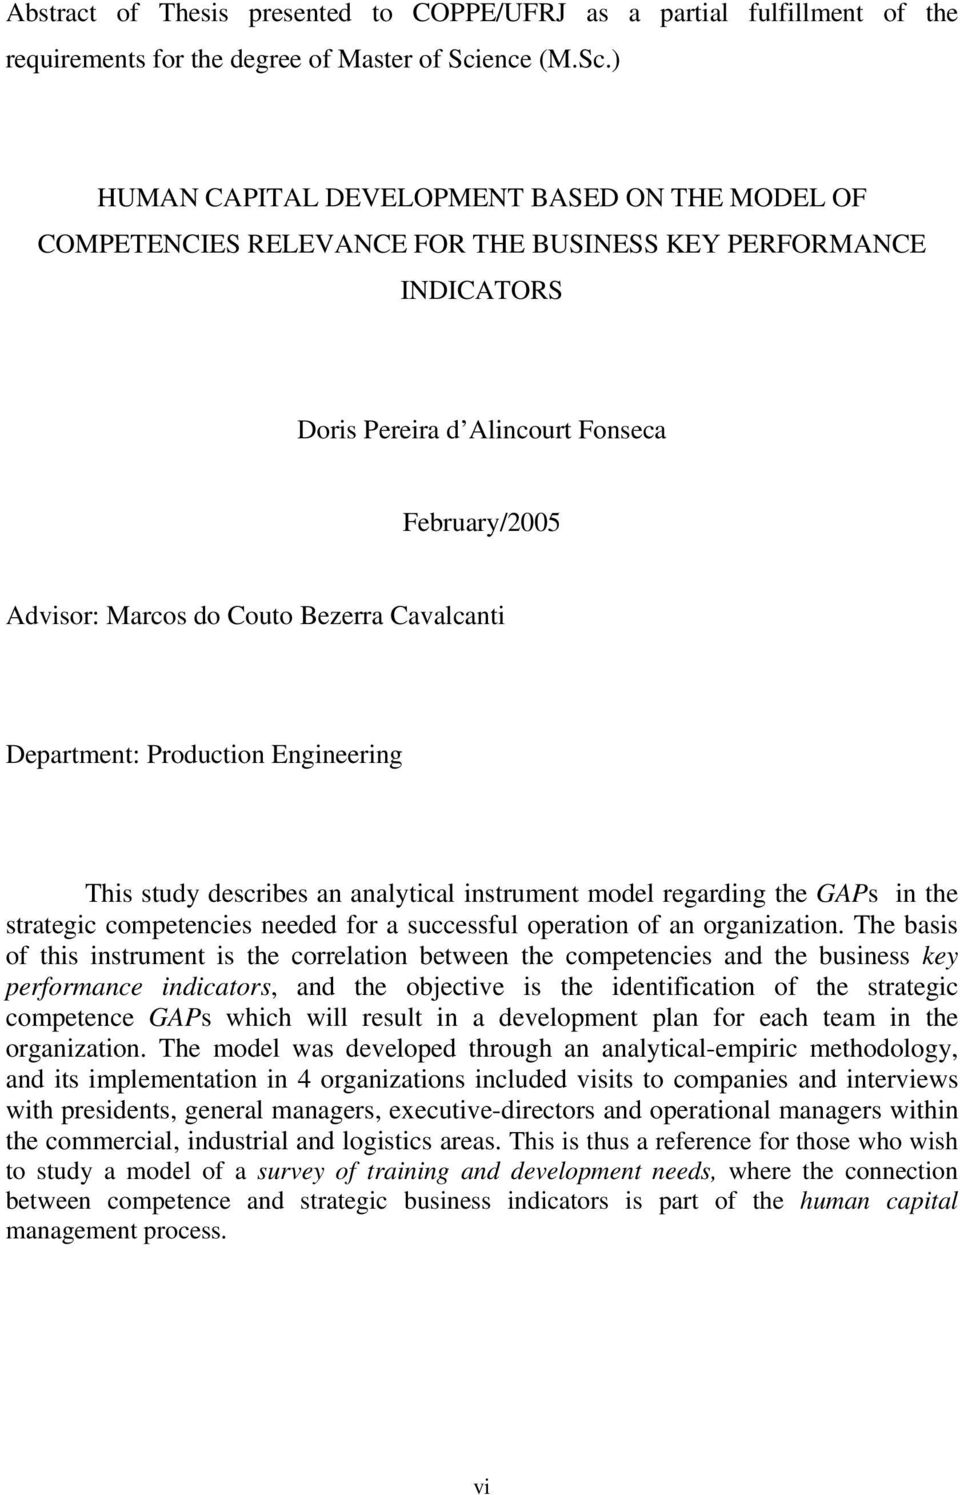 ) HUMAN CAPITAL DEVELOPMENT BASED ON THE MODEL OF COMPETENCIES RELEVANCE FOR THE BUSINESS KEY PERFORMANCE INDICATORS Doris Pereira d Alincourt Fonseca February/2005 Advisor: Marcos do Couto Bezerra